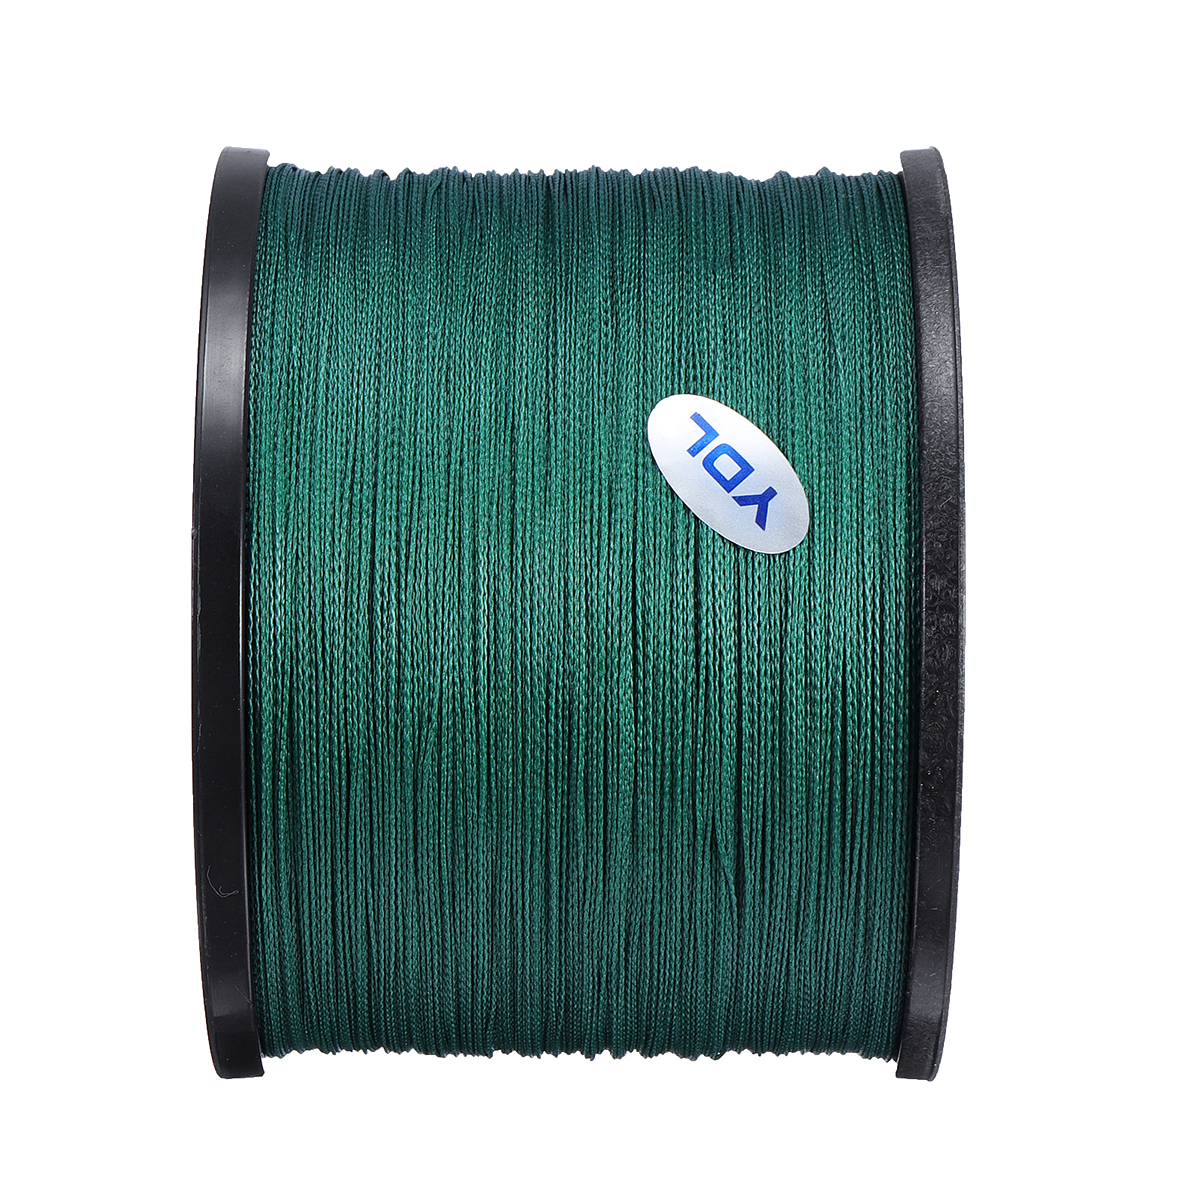 1000M 4 Strands Super Strong Green Braided Spectra Sea Fishing Line Saltwater PE Line